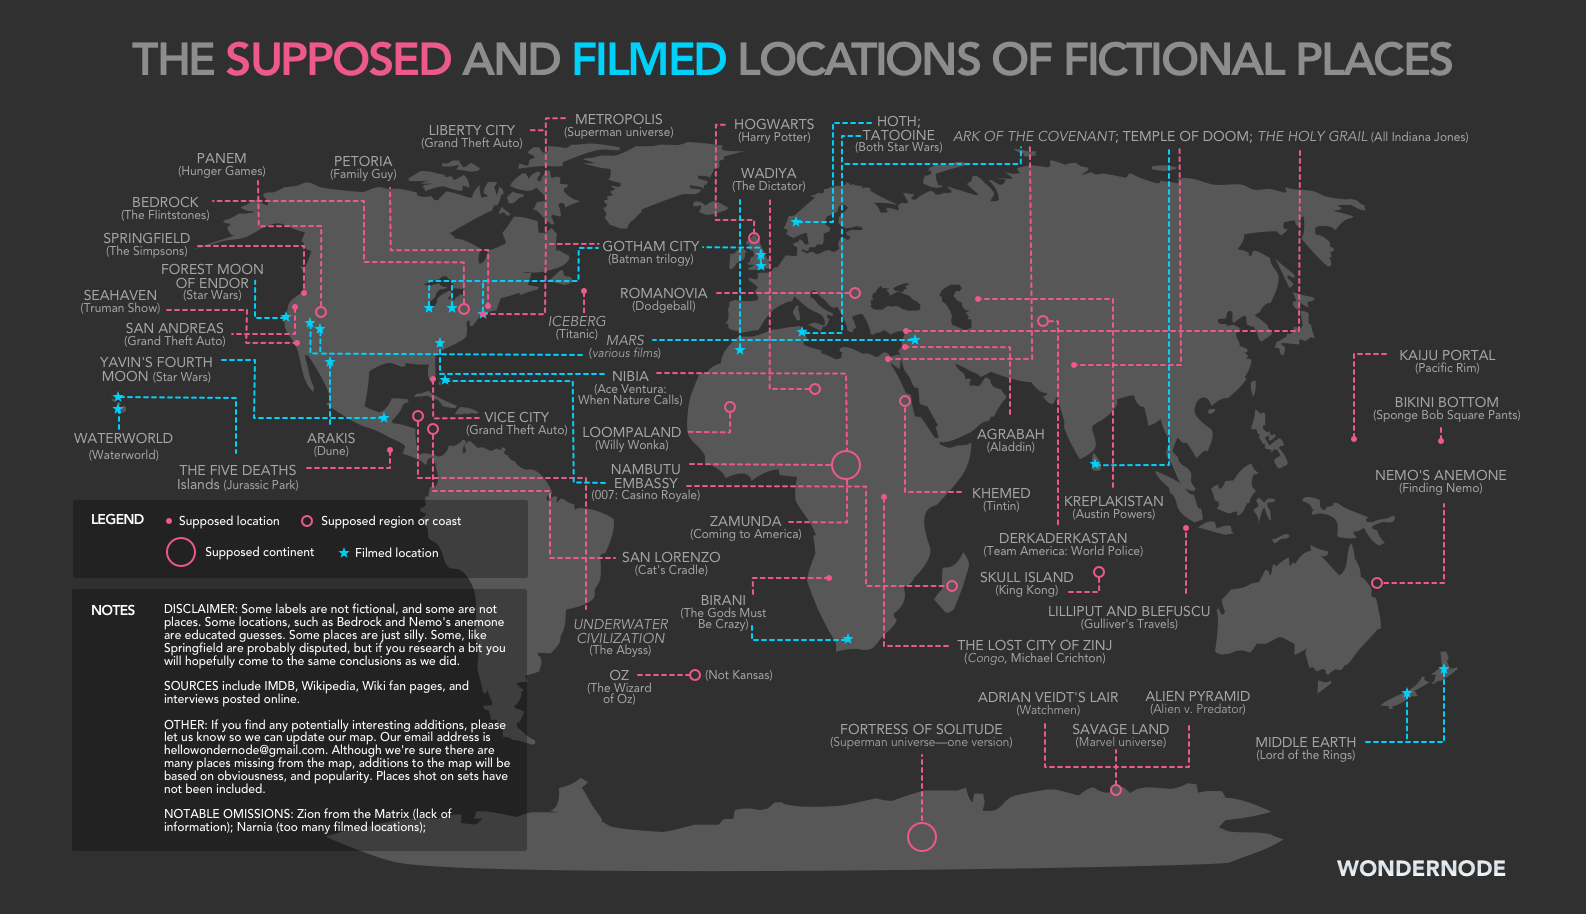 http://www.ritholtz.com/blog/2014/06/the-supposed-and-filmed-locations-of-fictional-places/